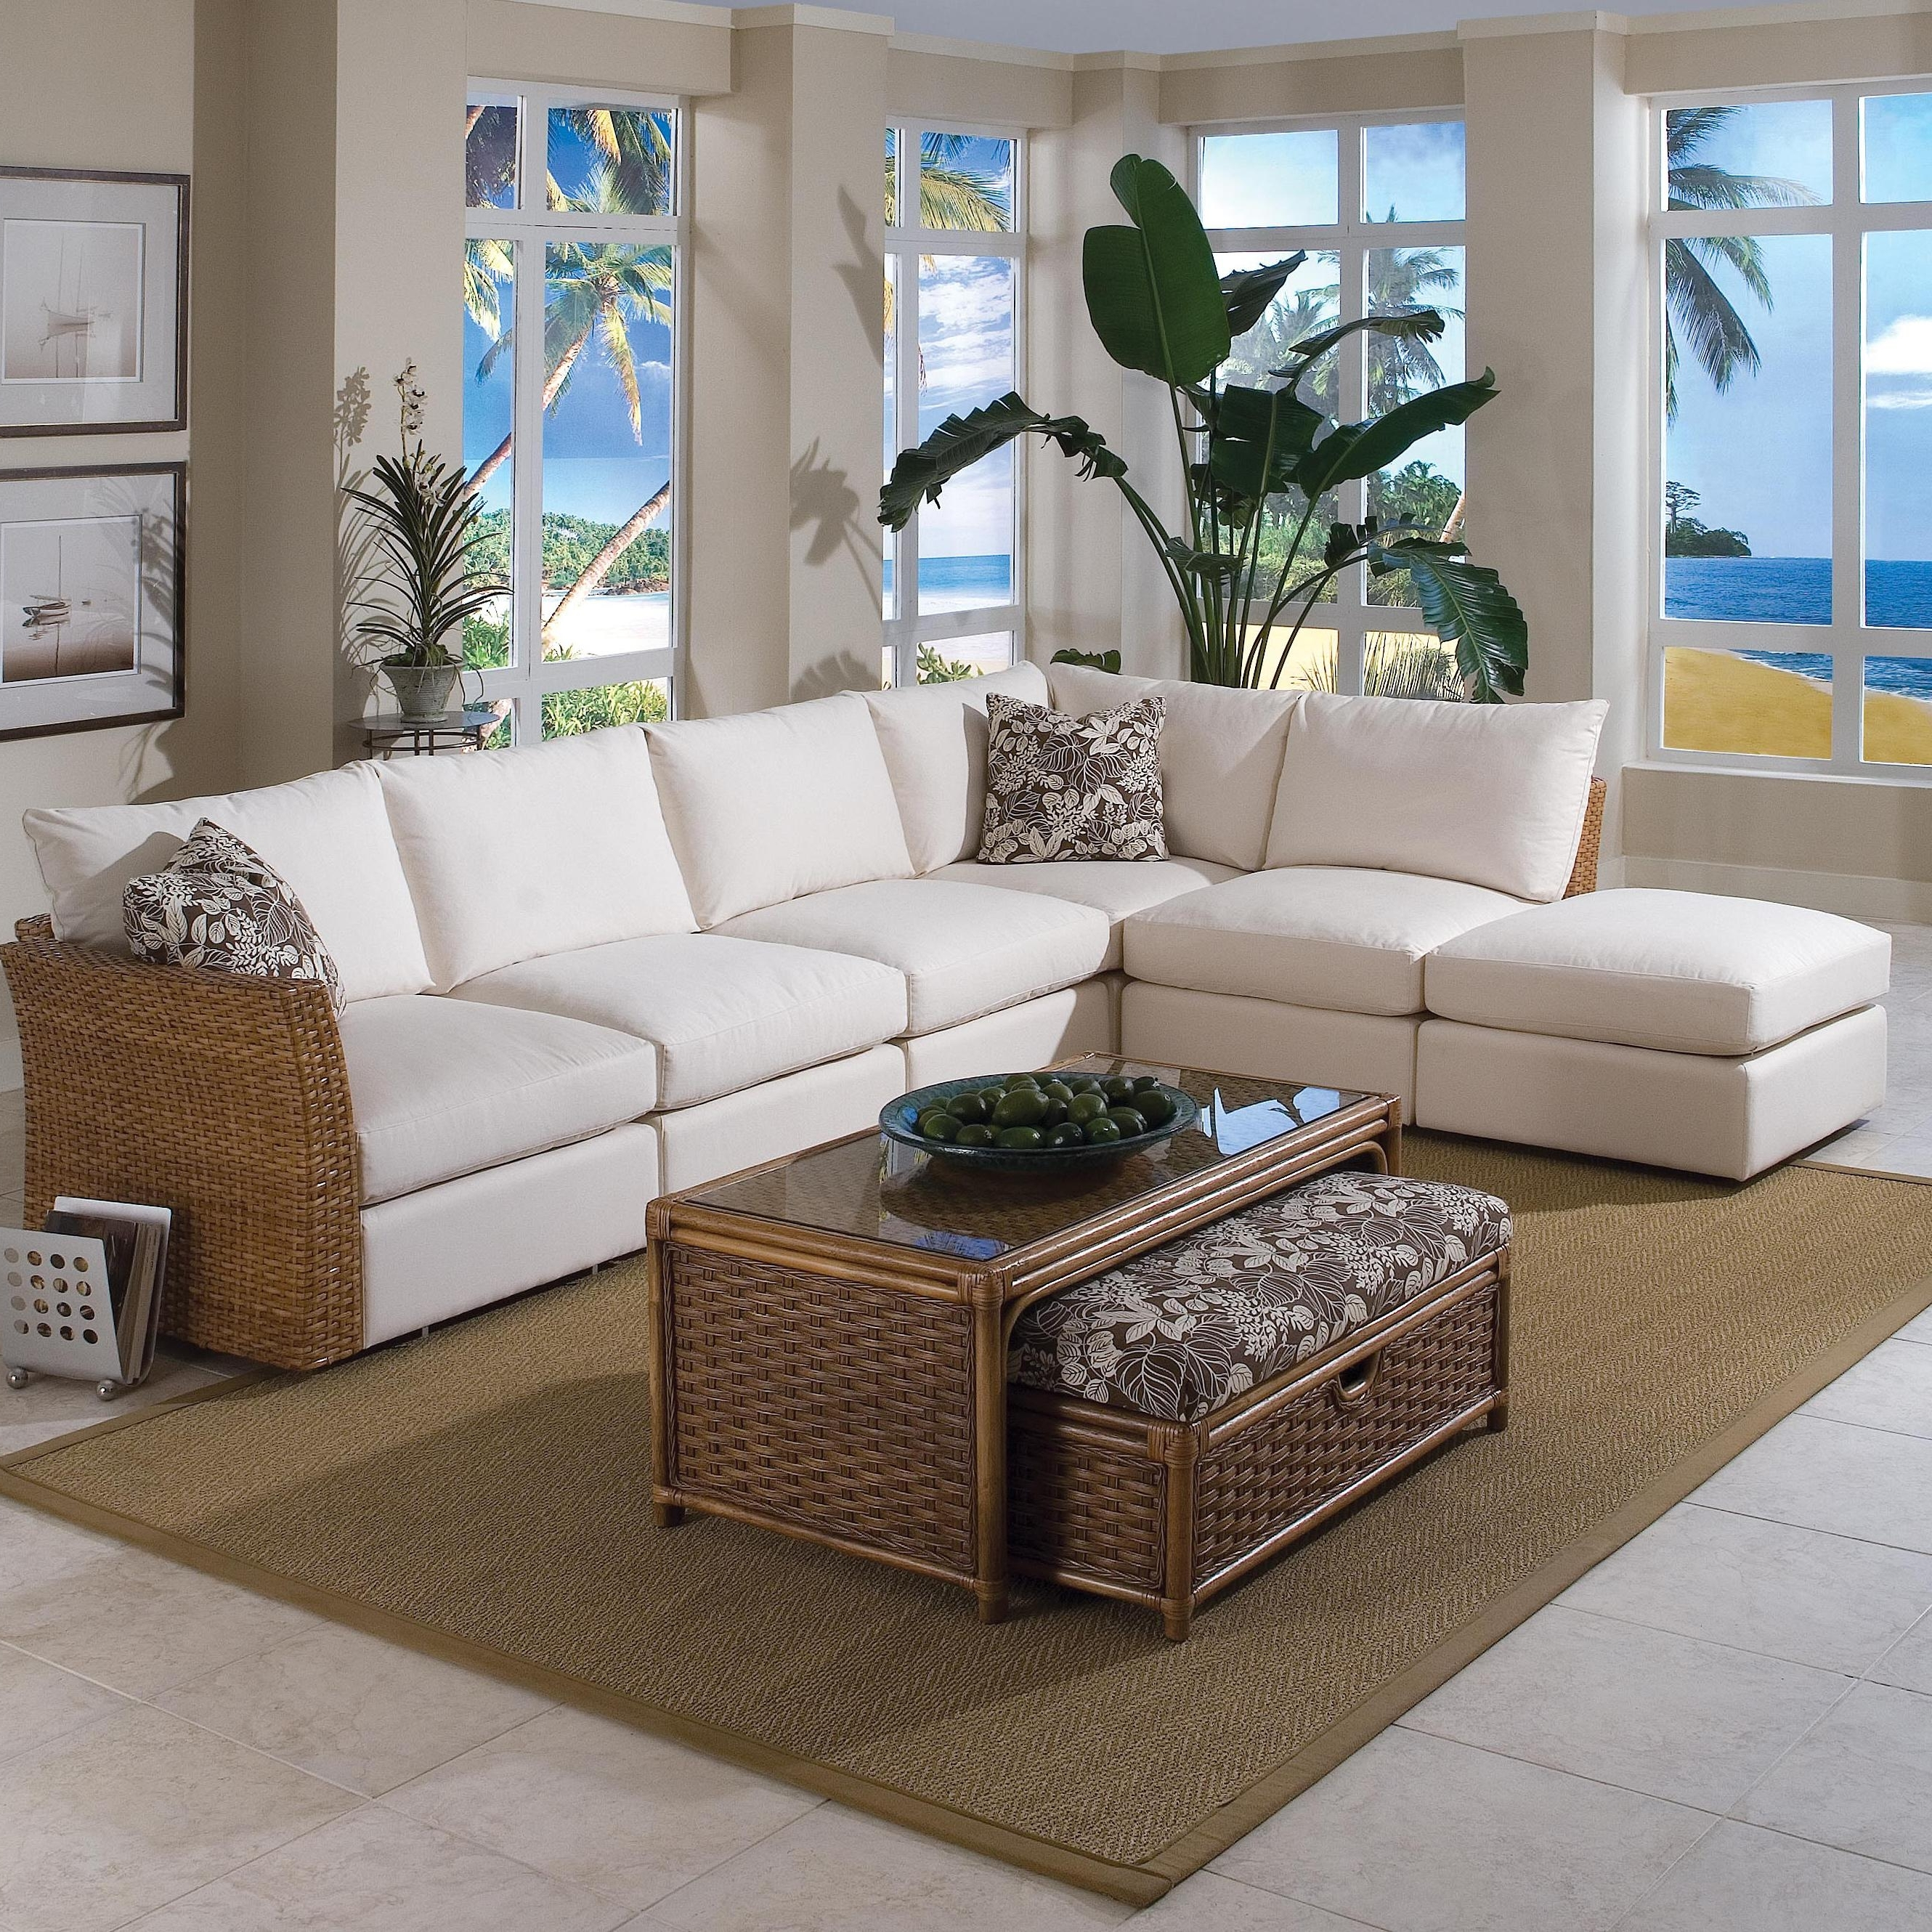 Most Recent Sectional Sofas At Havertys Intended For Braxton Culler Grand Water Point Tropical Sectional Sofa With Two (View 8 of 15)